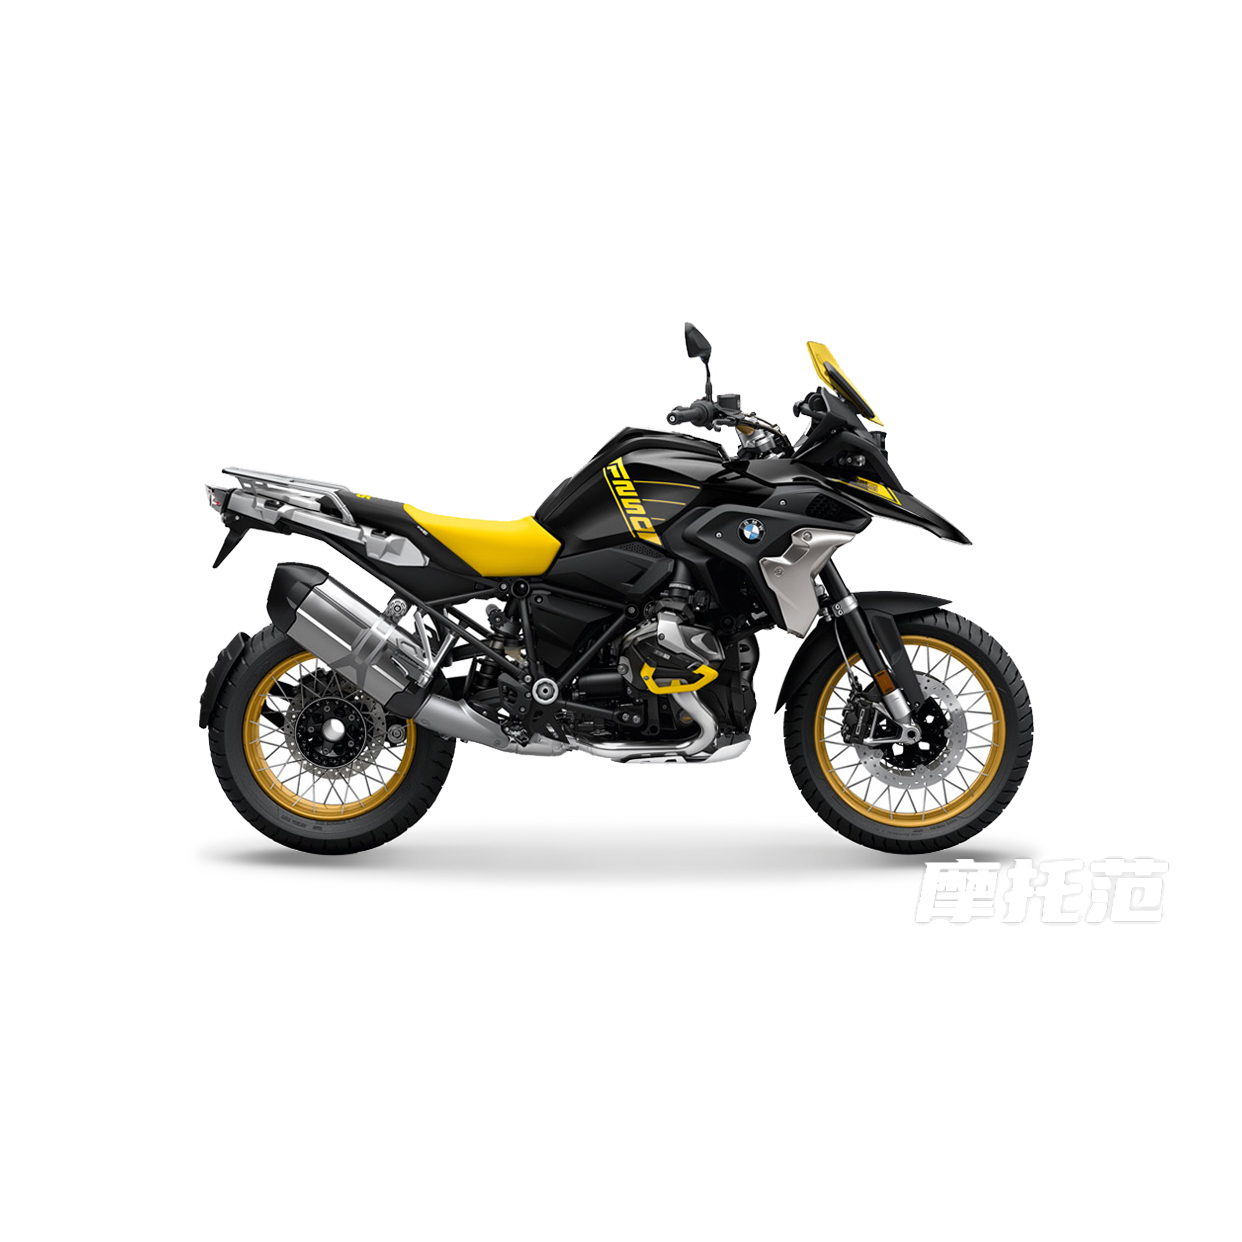 undefined 宝马 R 1250 GS